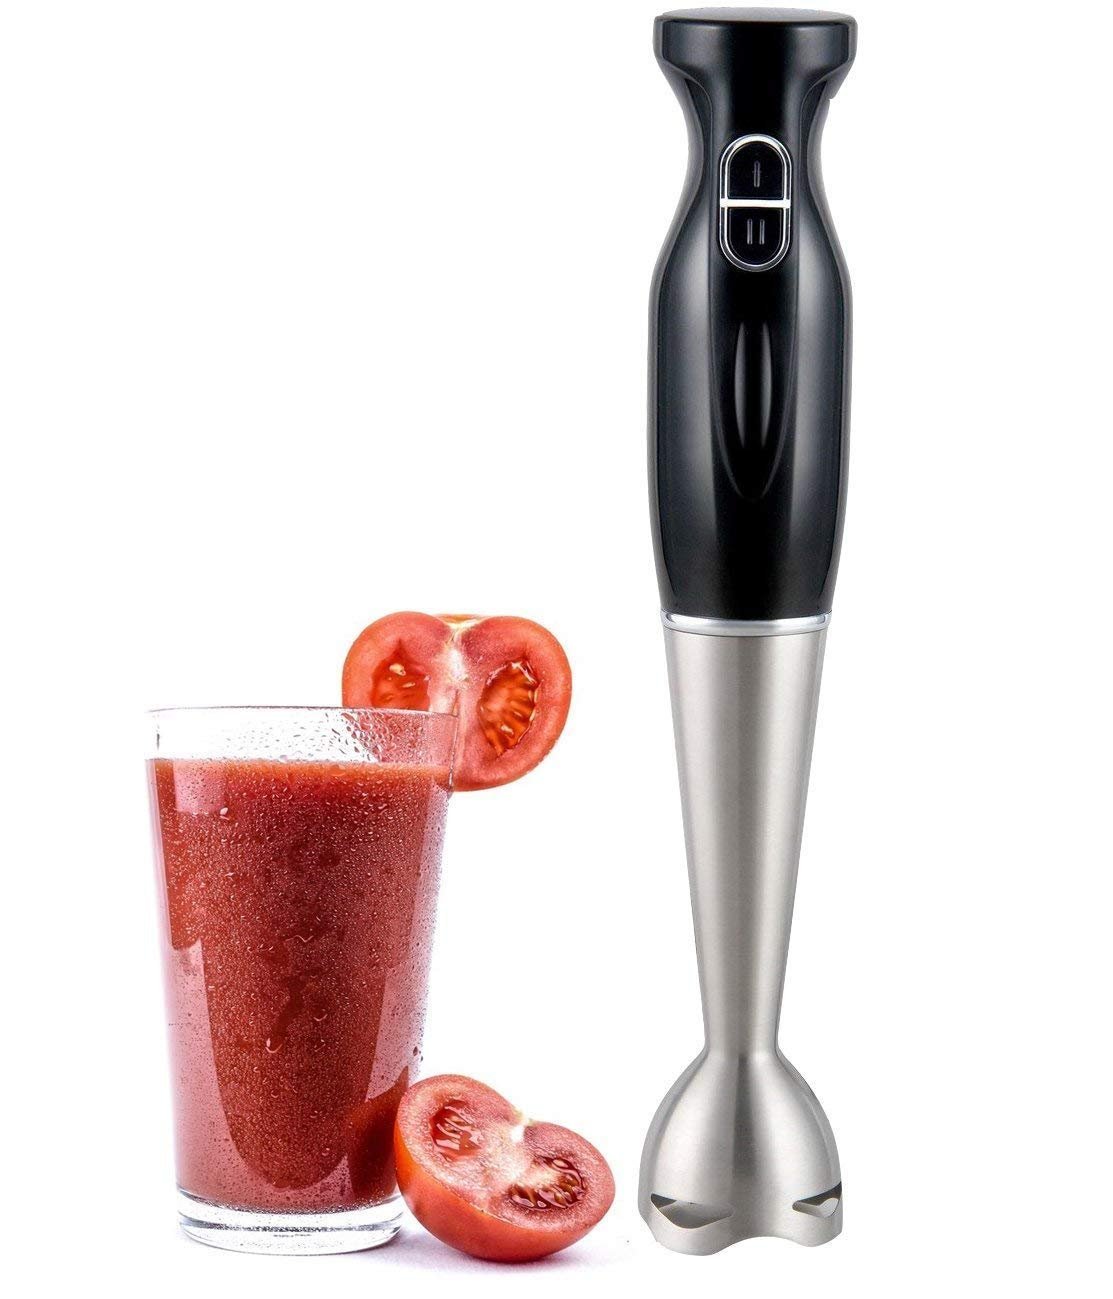 Alpine Cuisine Hand Blender 300 watt with 2 speed Stainless Steel Immersion Blender with Detachable, Multi Purpose Mixer, Whisk & Chopper, Juicer, Smoothie and Gym Protein Shaker